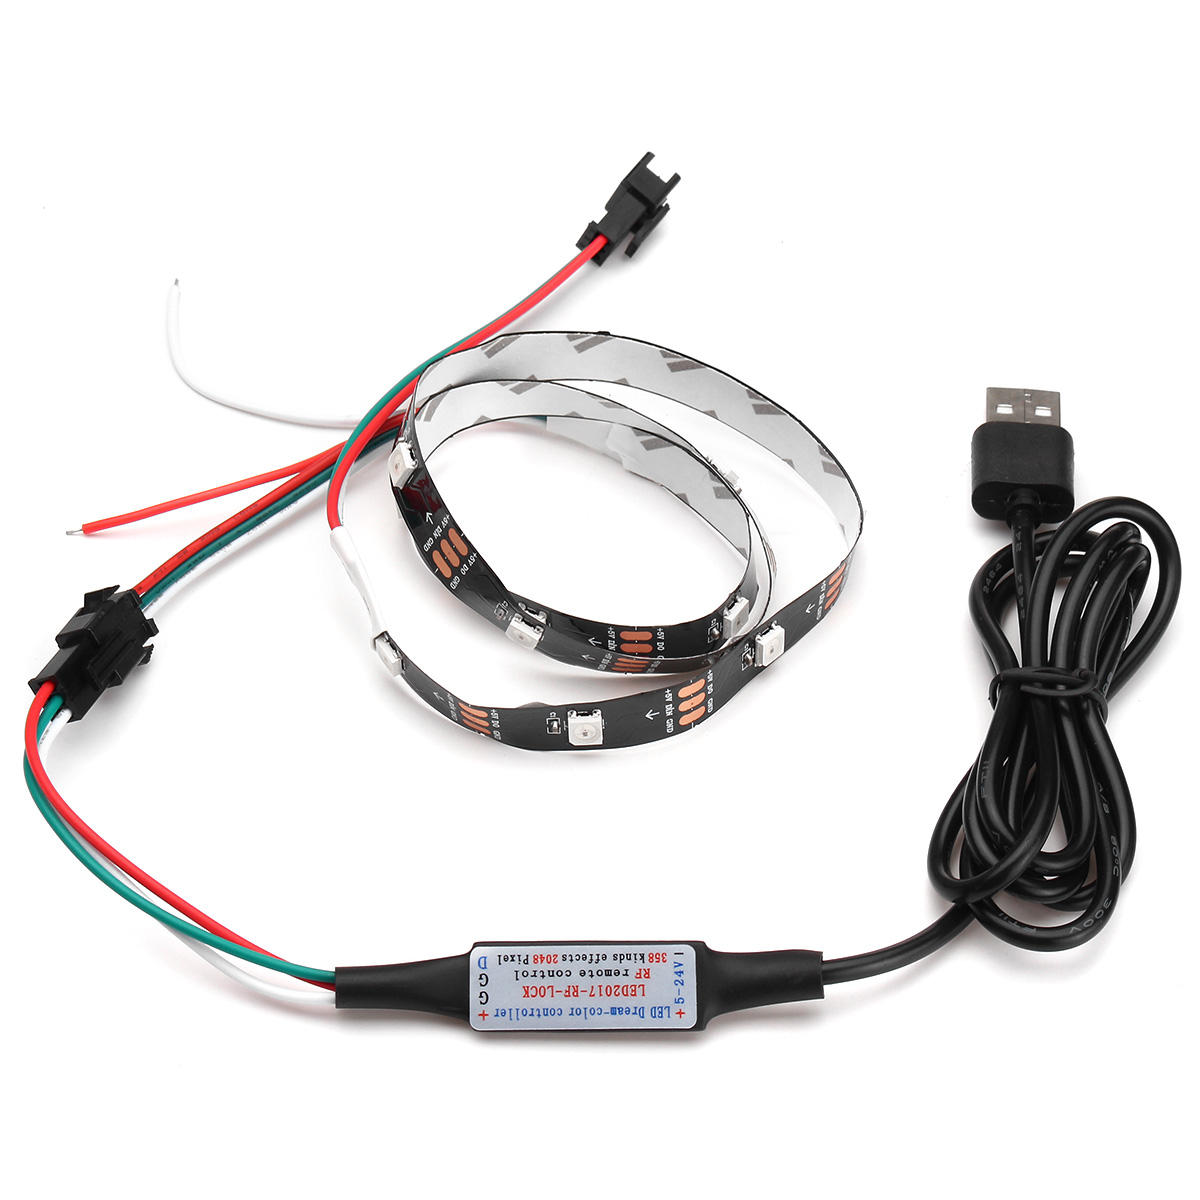 1M WS2812B 5050 RGB Changeable LED Strip Light 144 Leds Non-waterproof Individual Addressable 5V - 3